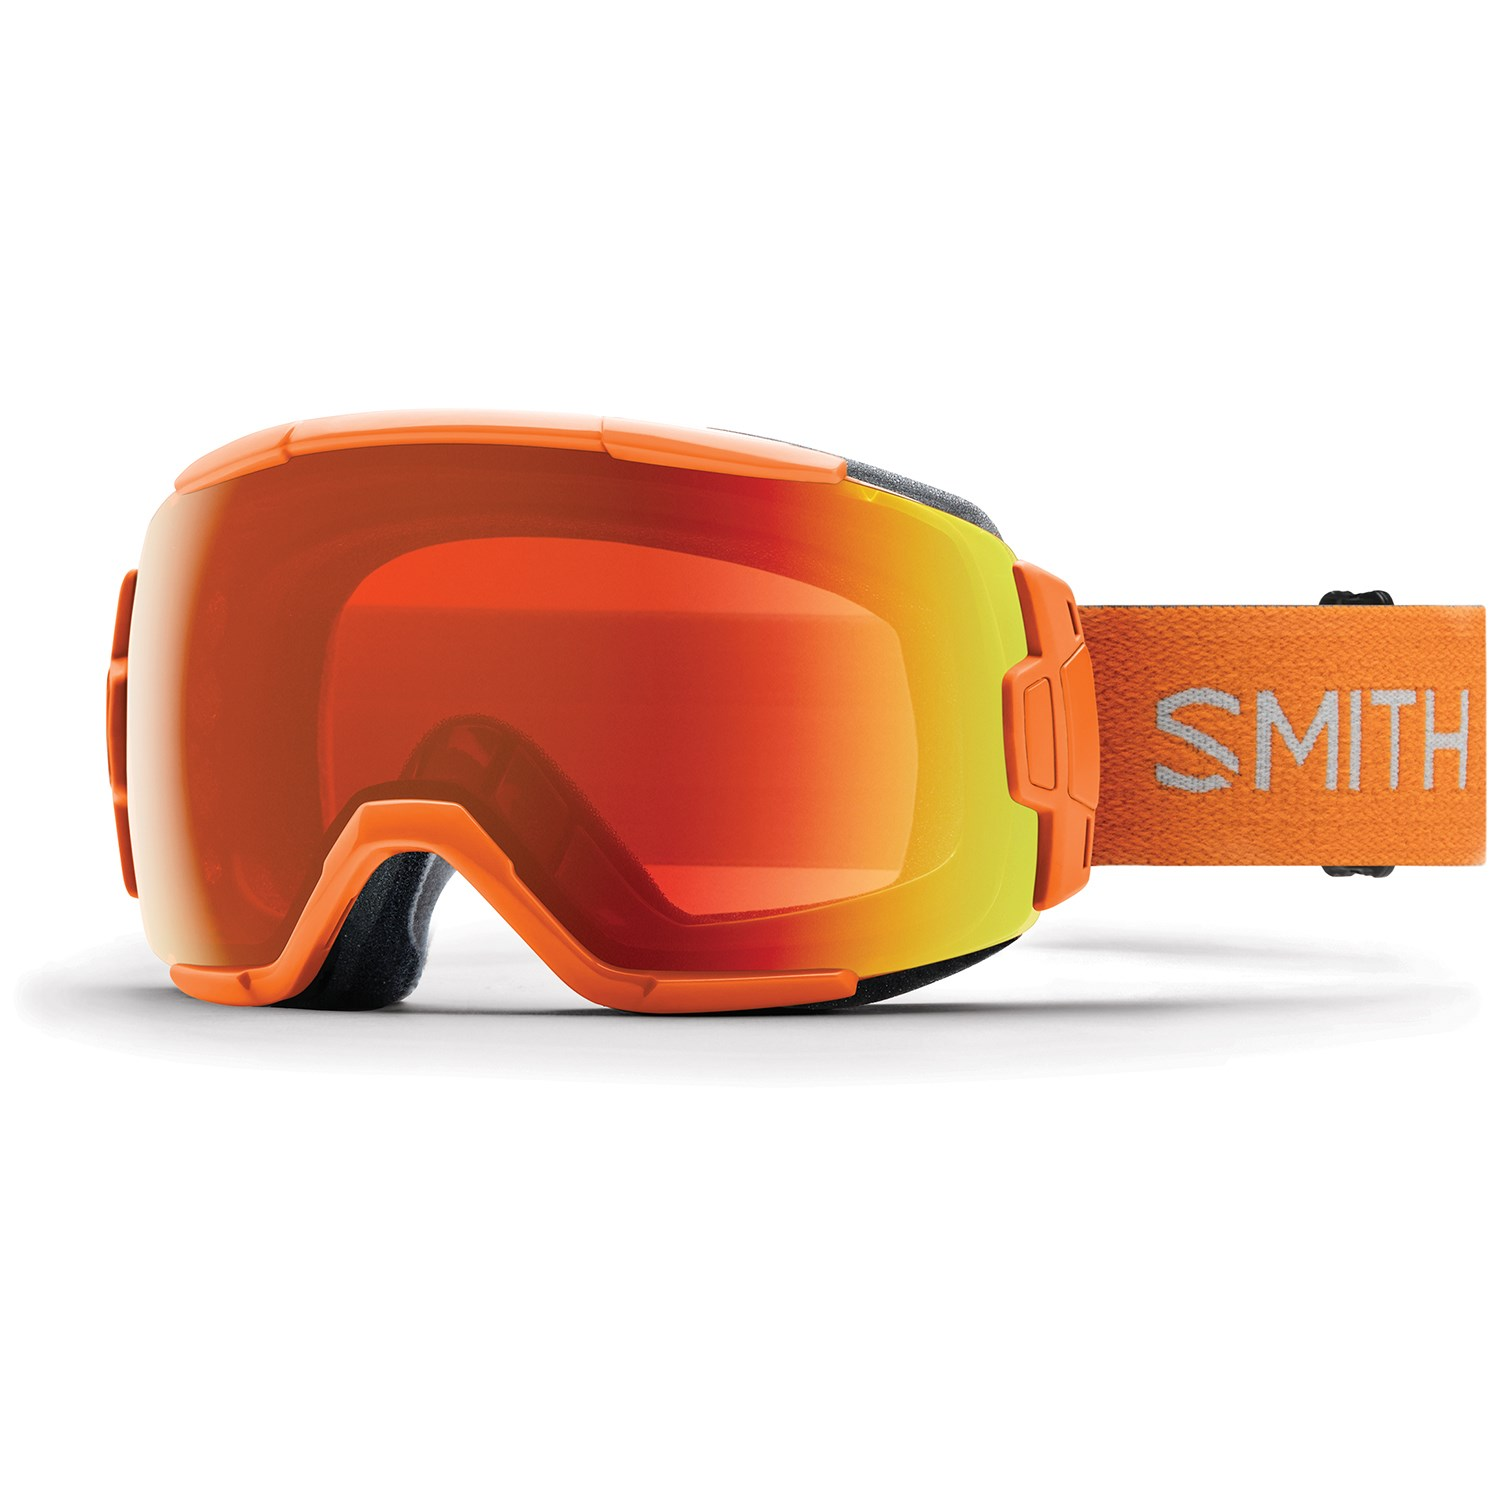 bb295d44604 Smith Vice Goggles